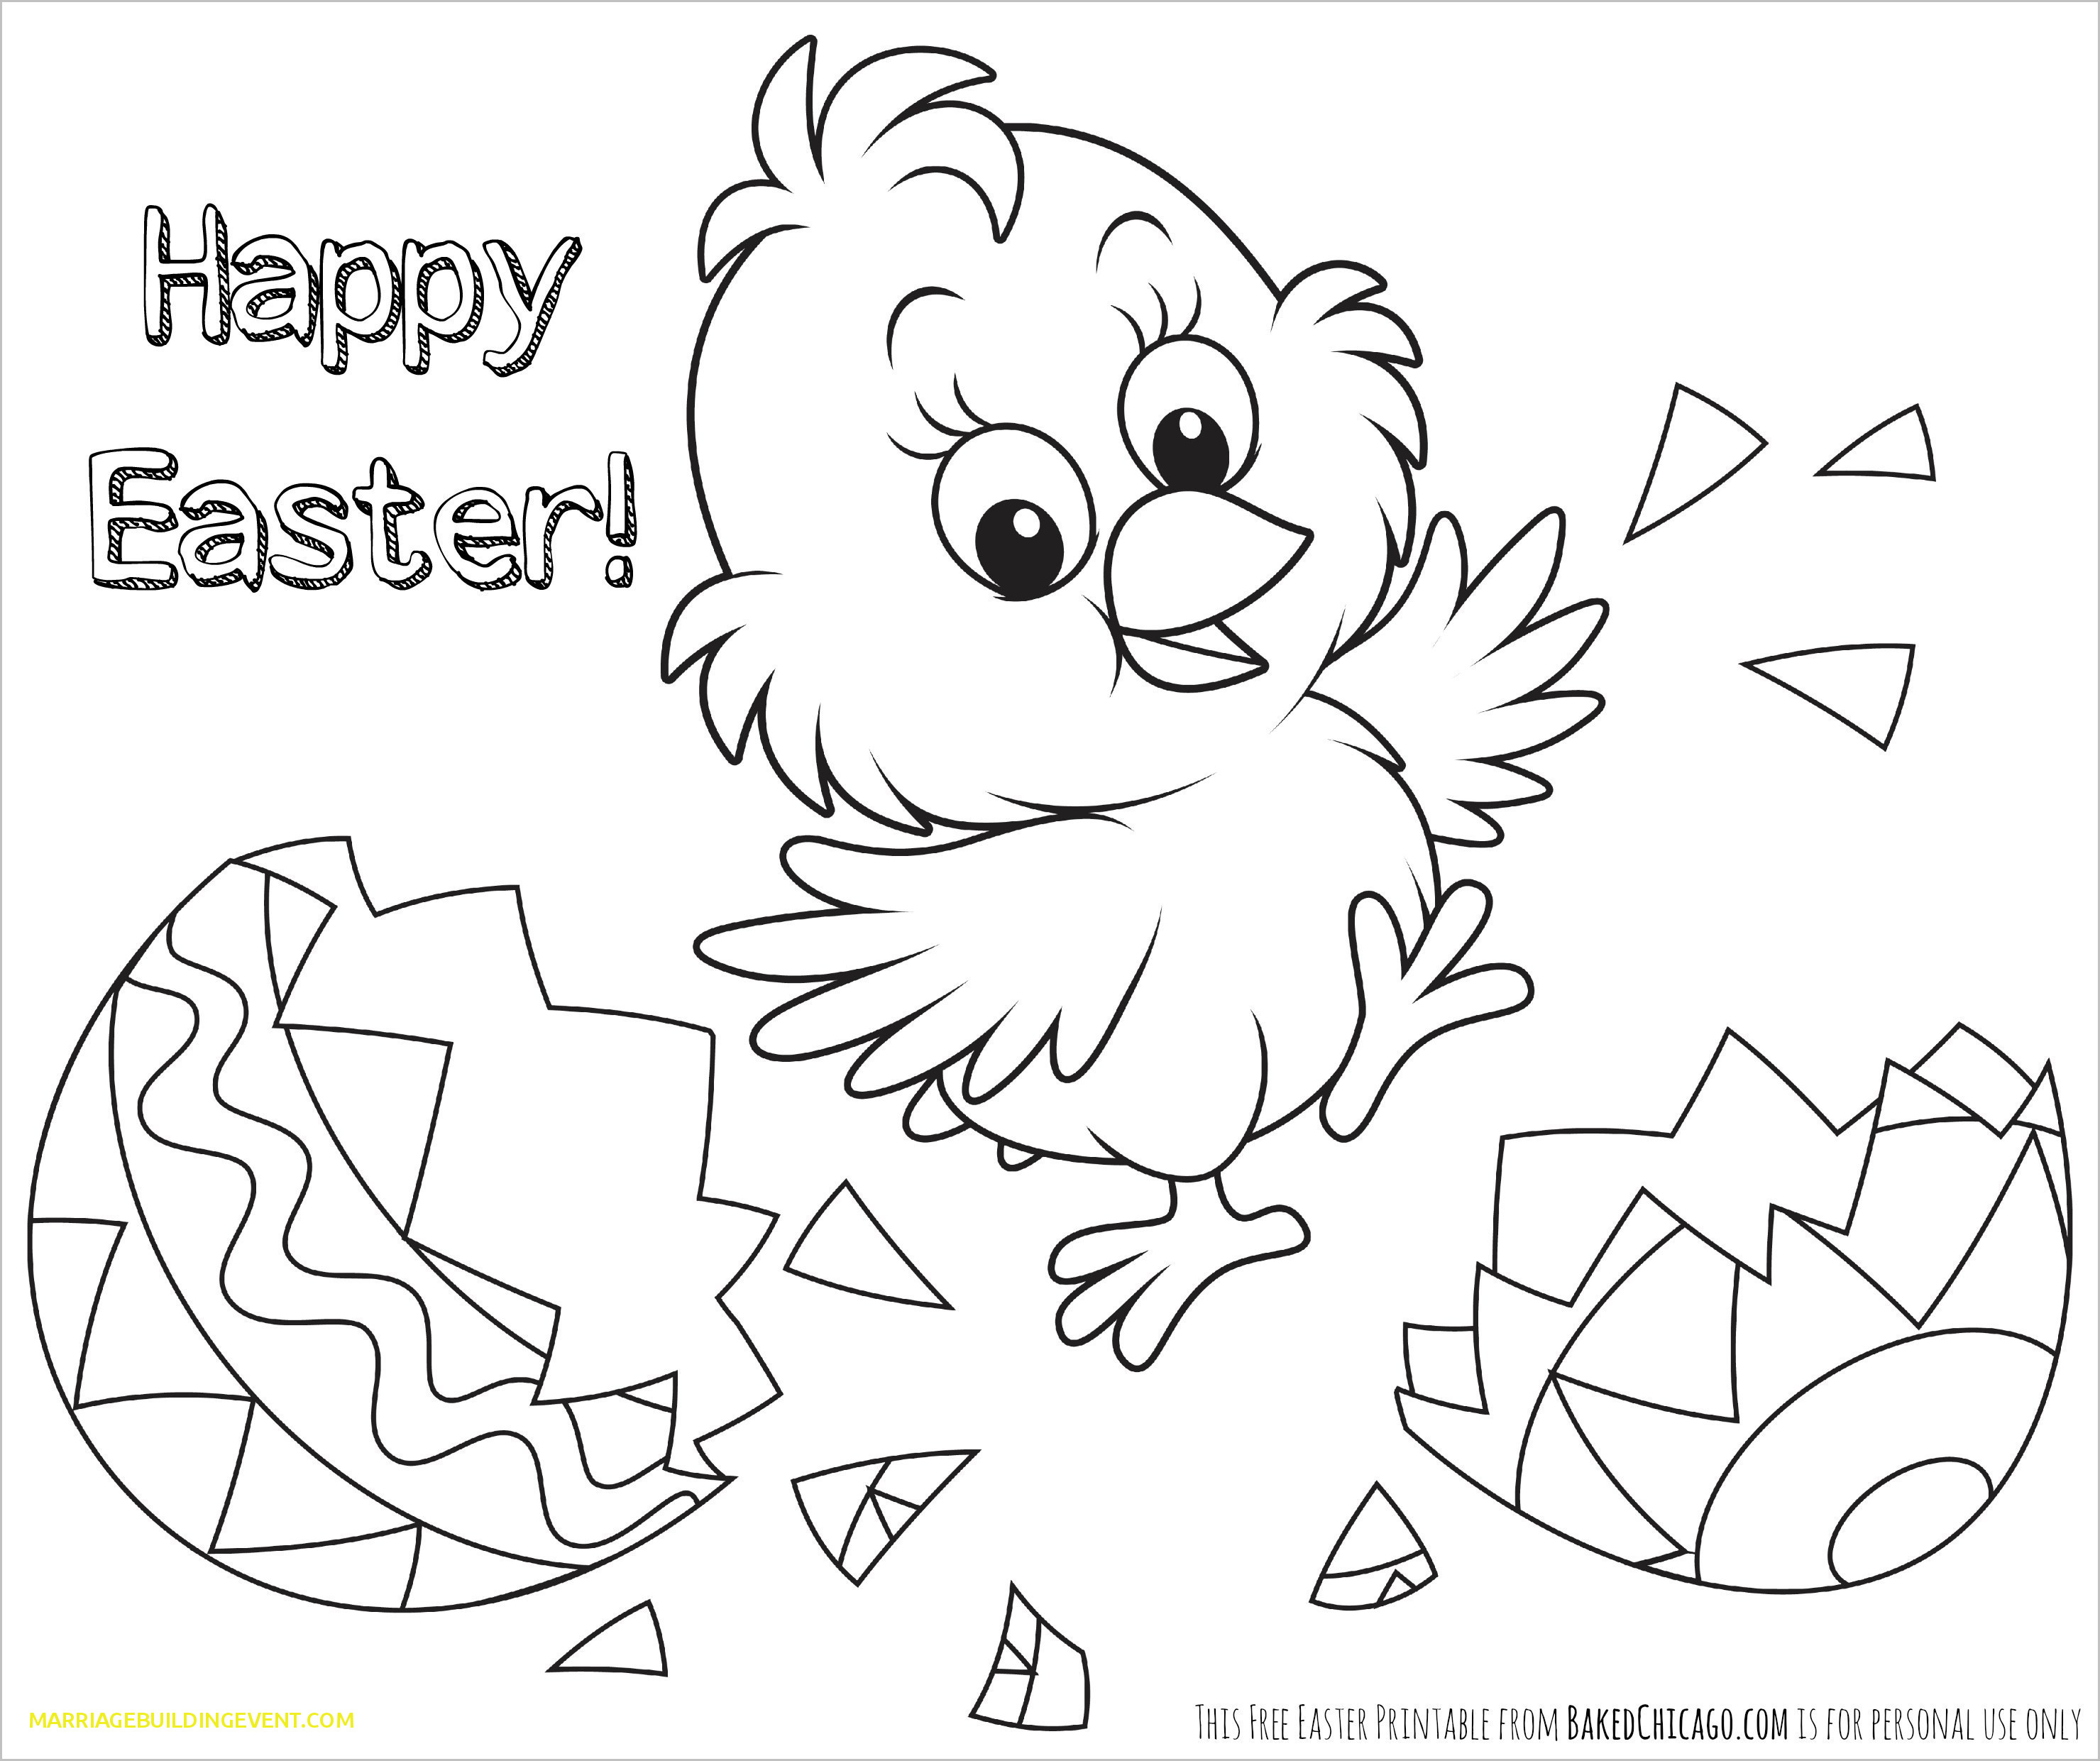 Beau Easter Coloring Pages For Kids To Print | Marriagebuildingevent - Free Printable Easter Pages